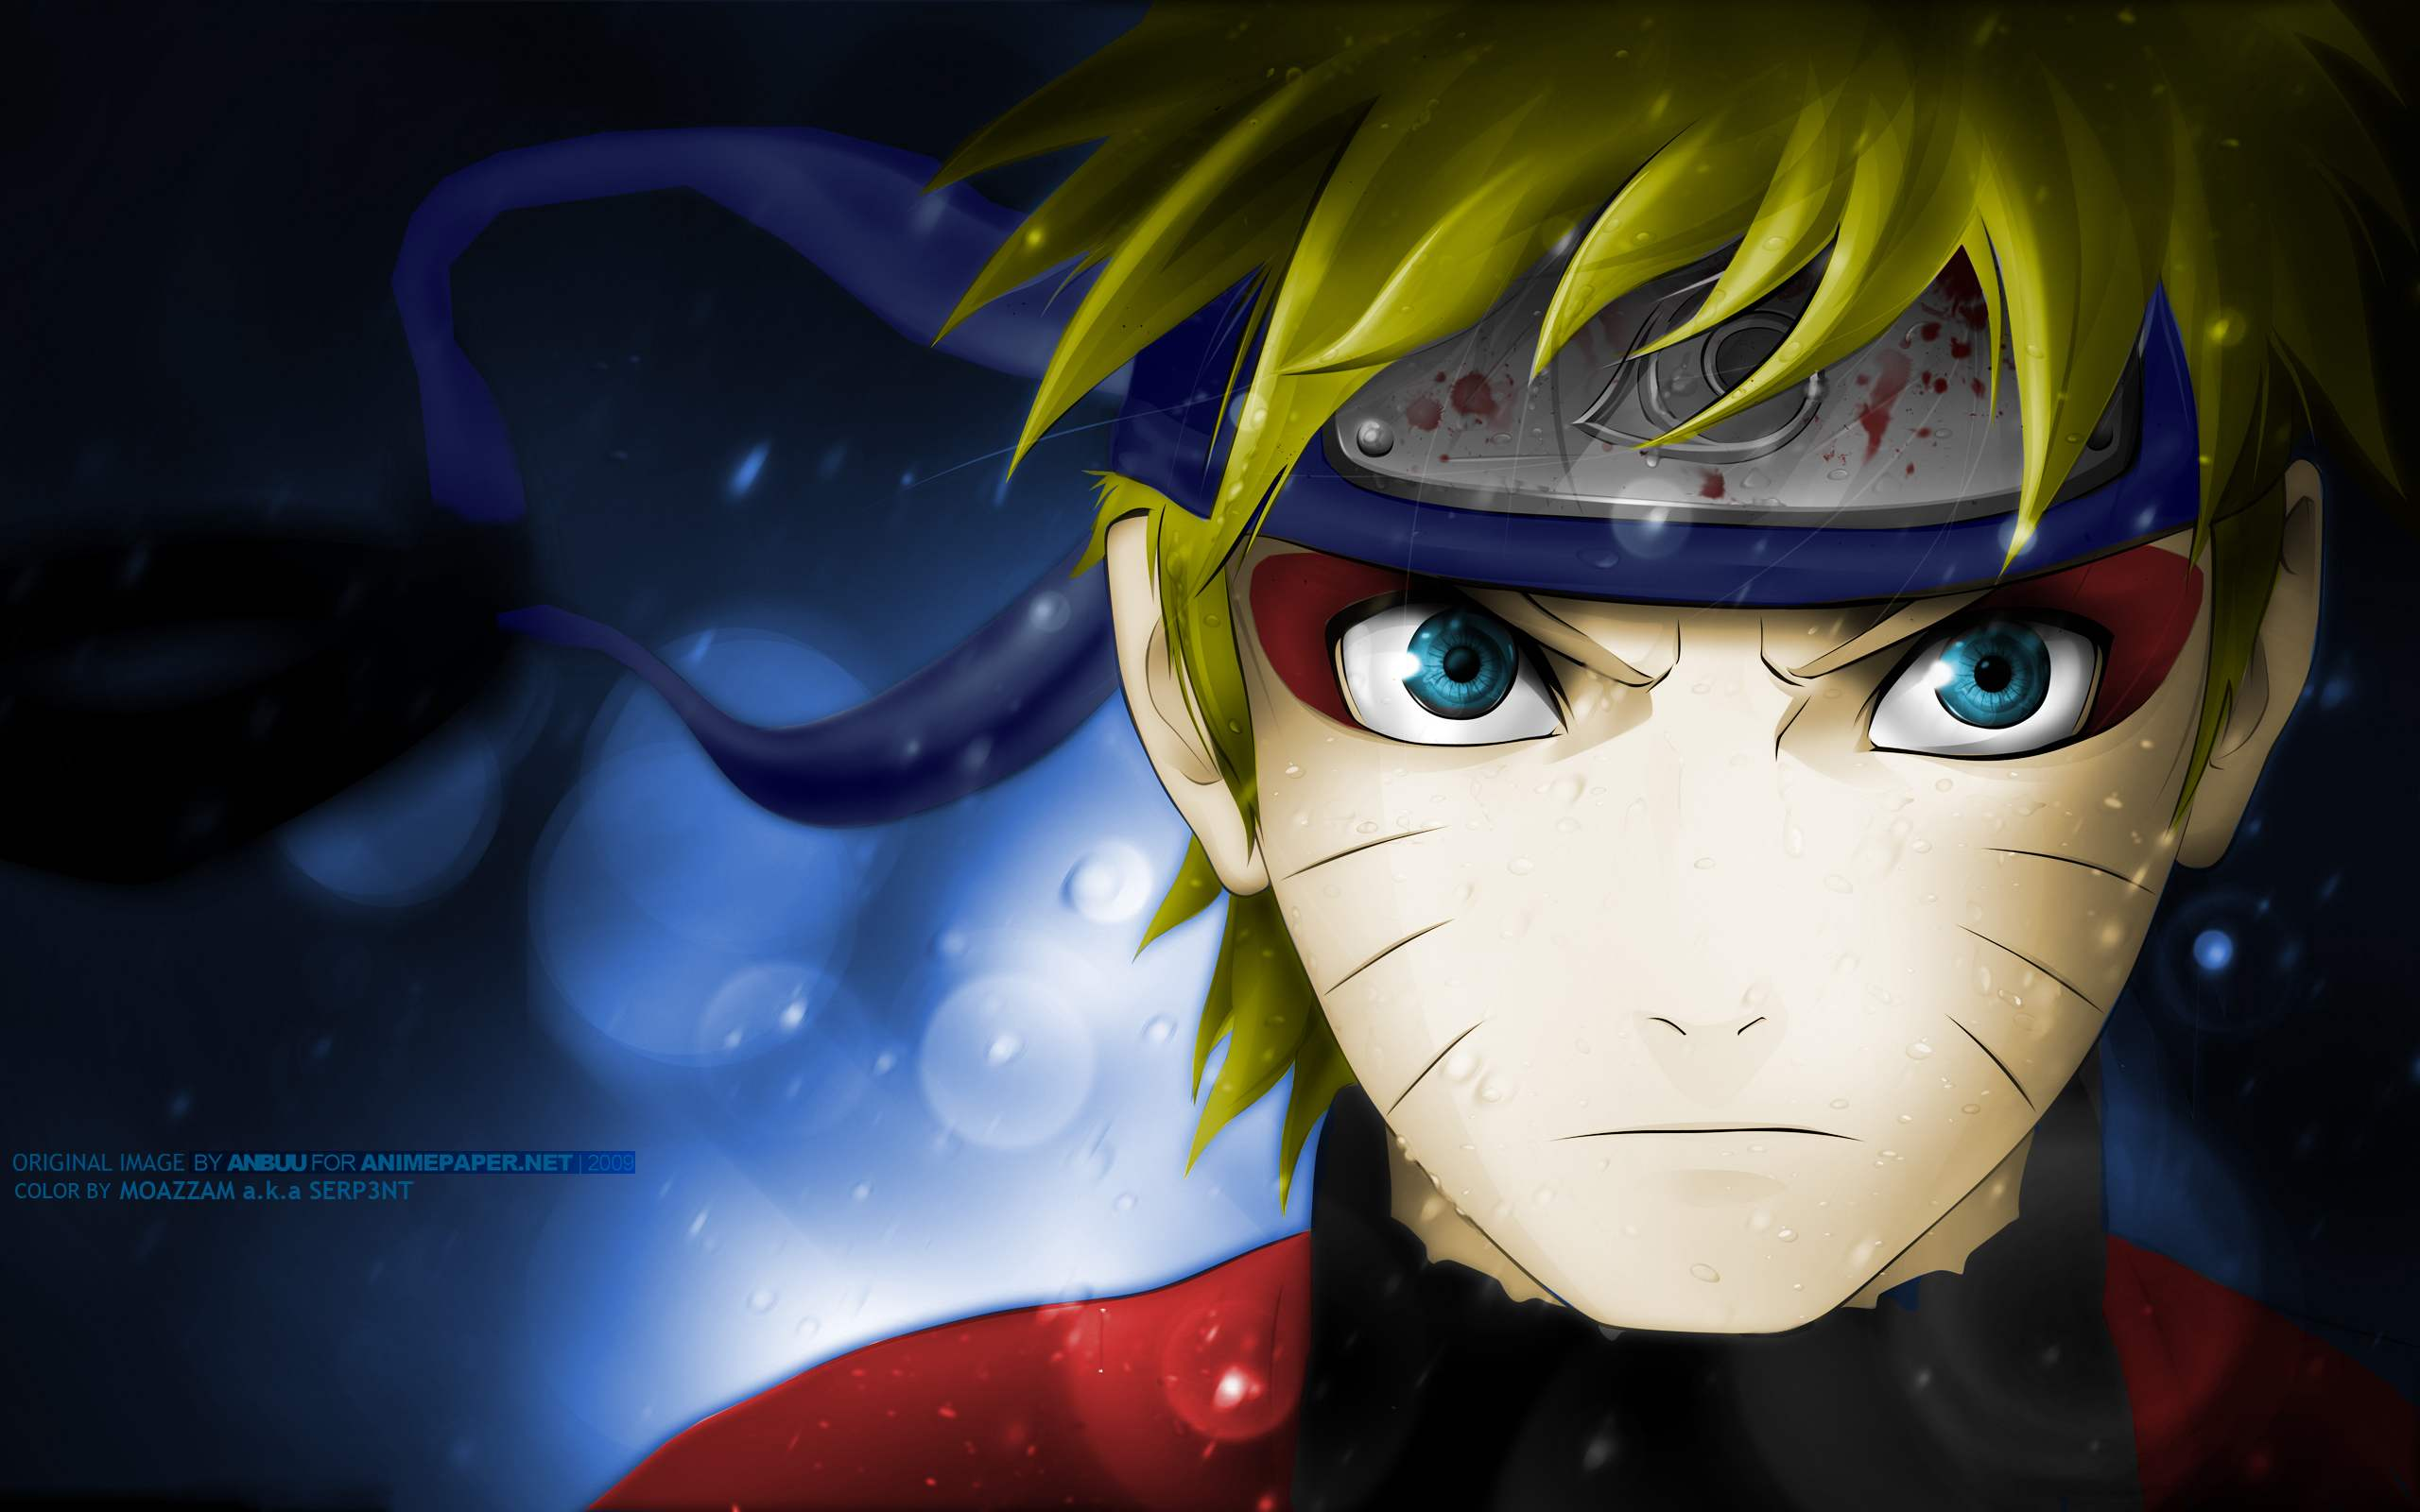 download wallpaper naruto hd for pc terbaru 2015